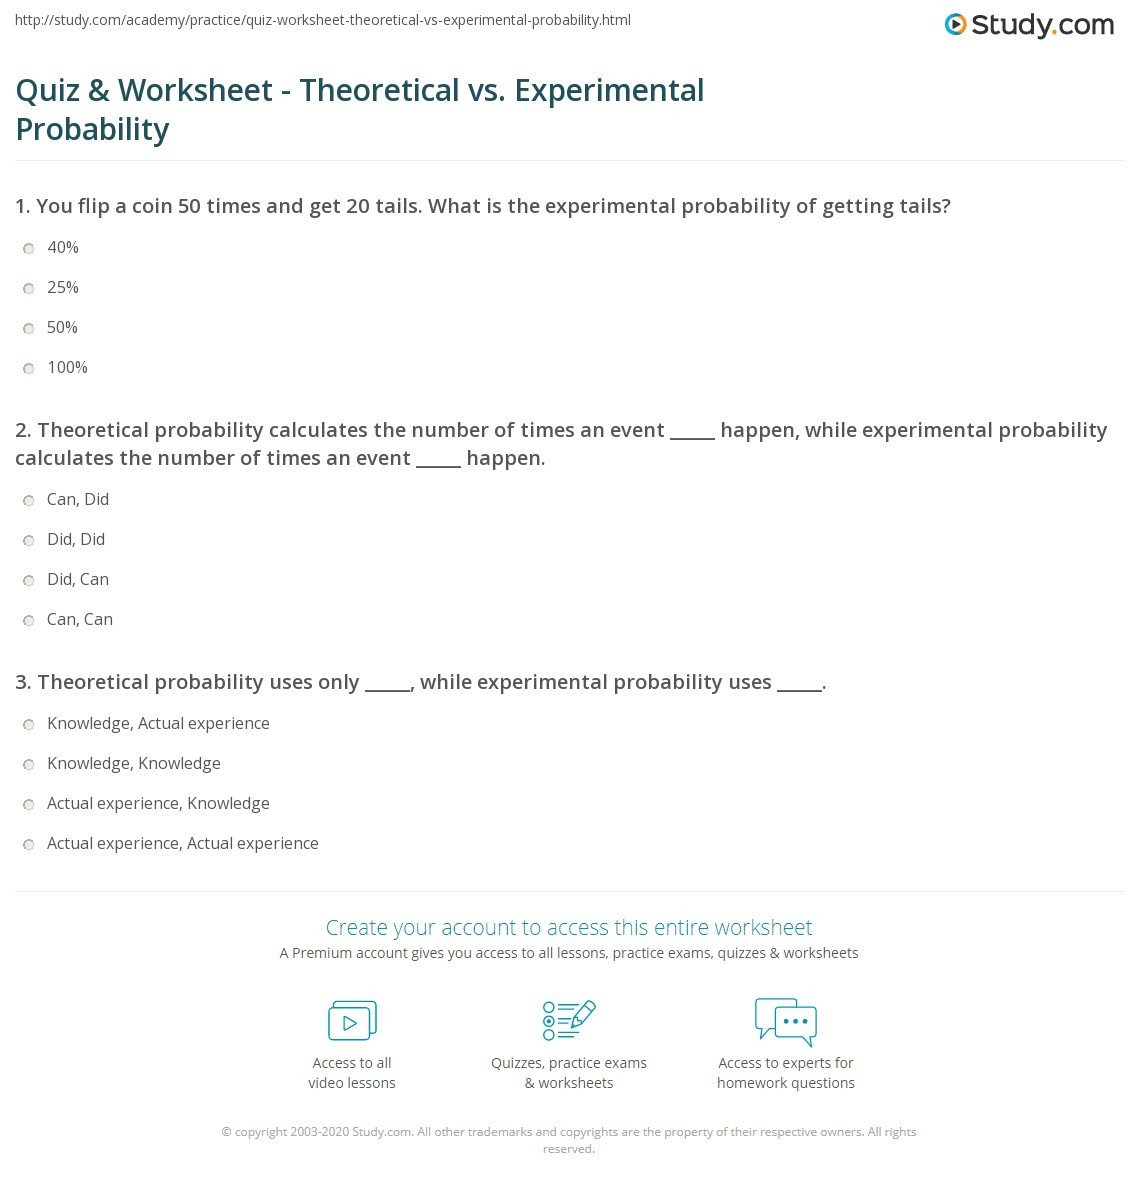 Theoretical Probability Worksheets 7th Grade Quiz & Worksheet theoretical Vs Experimental Probability